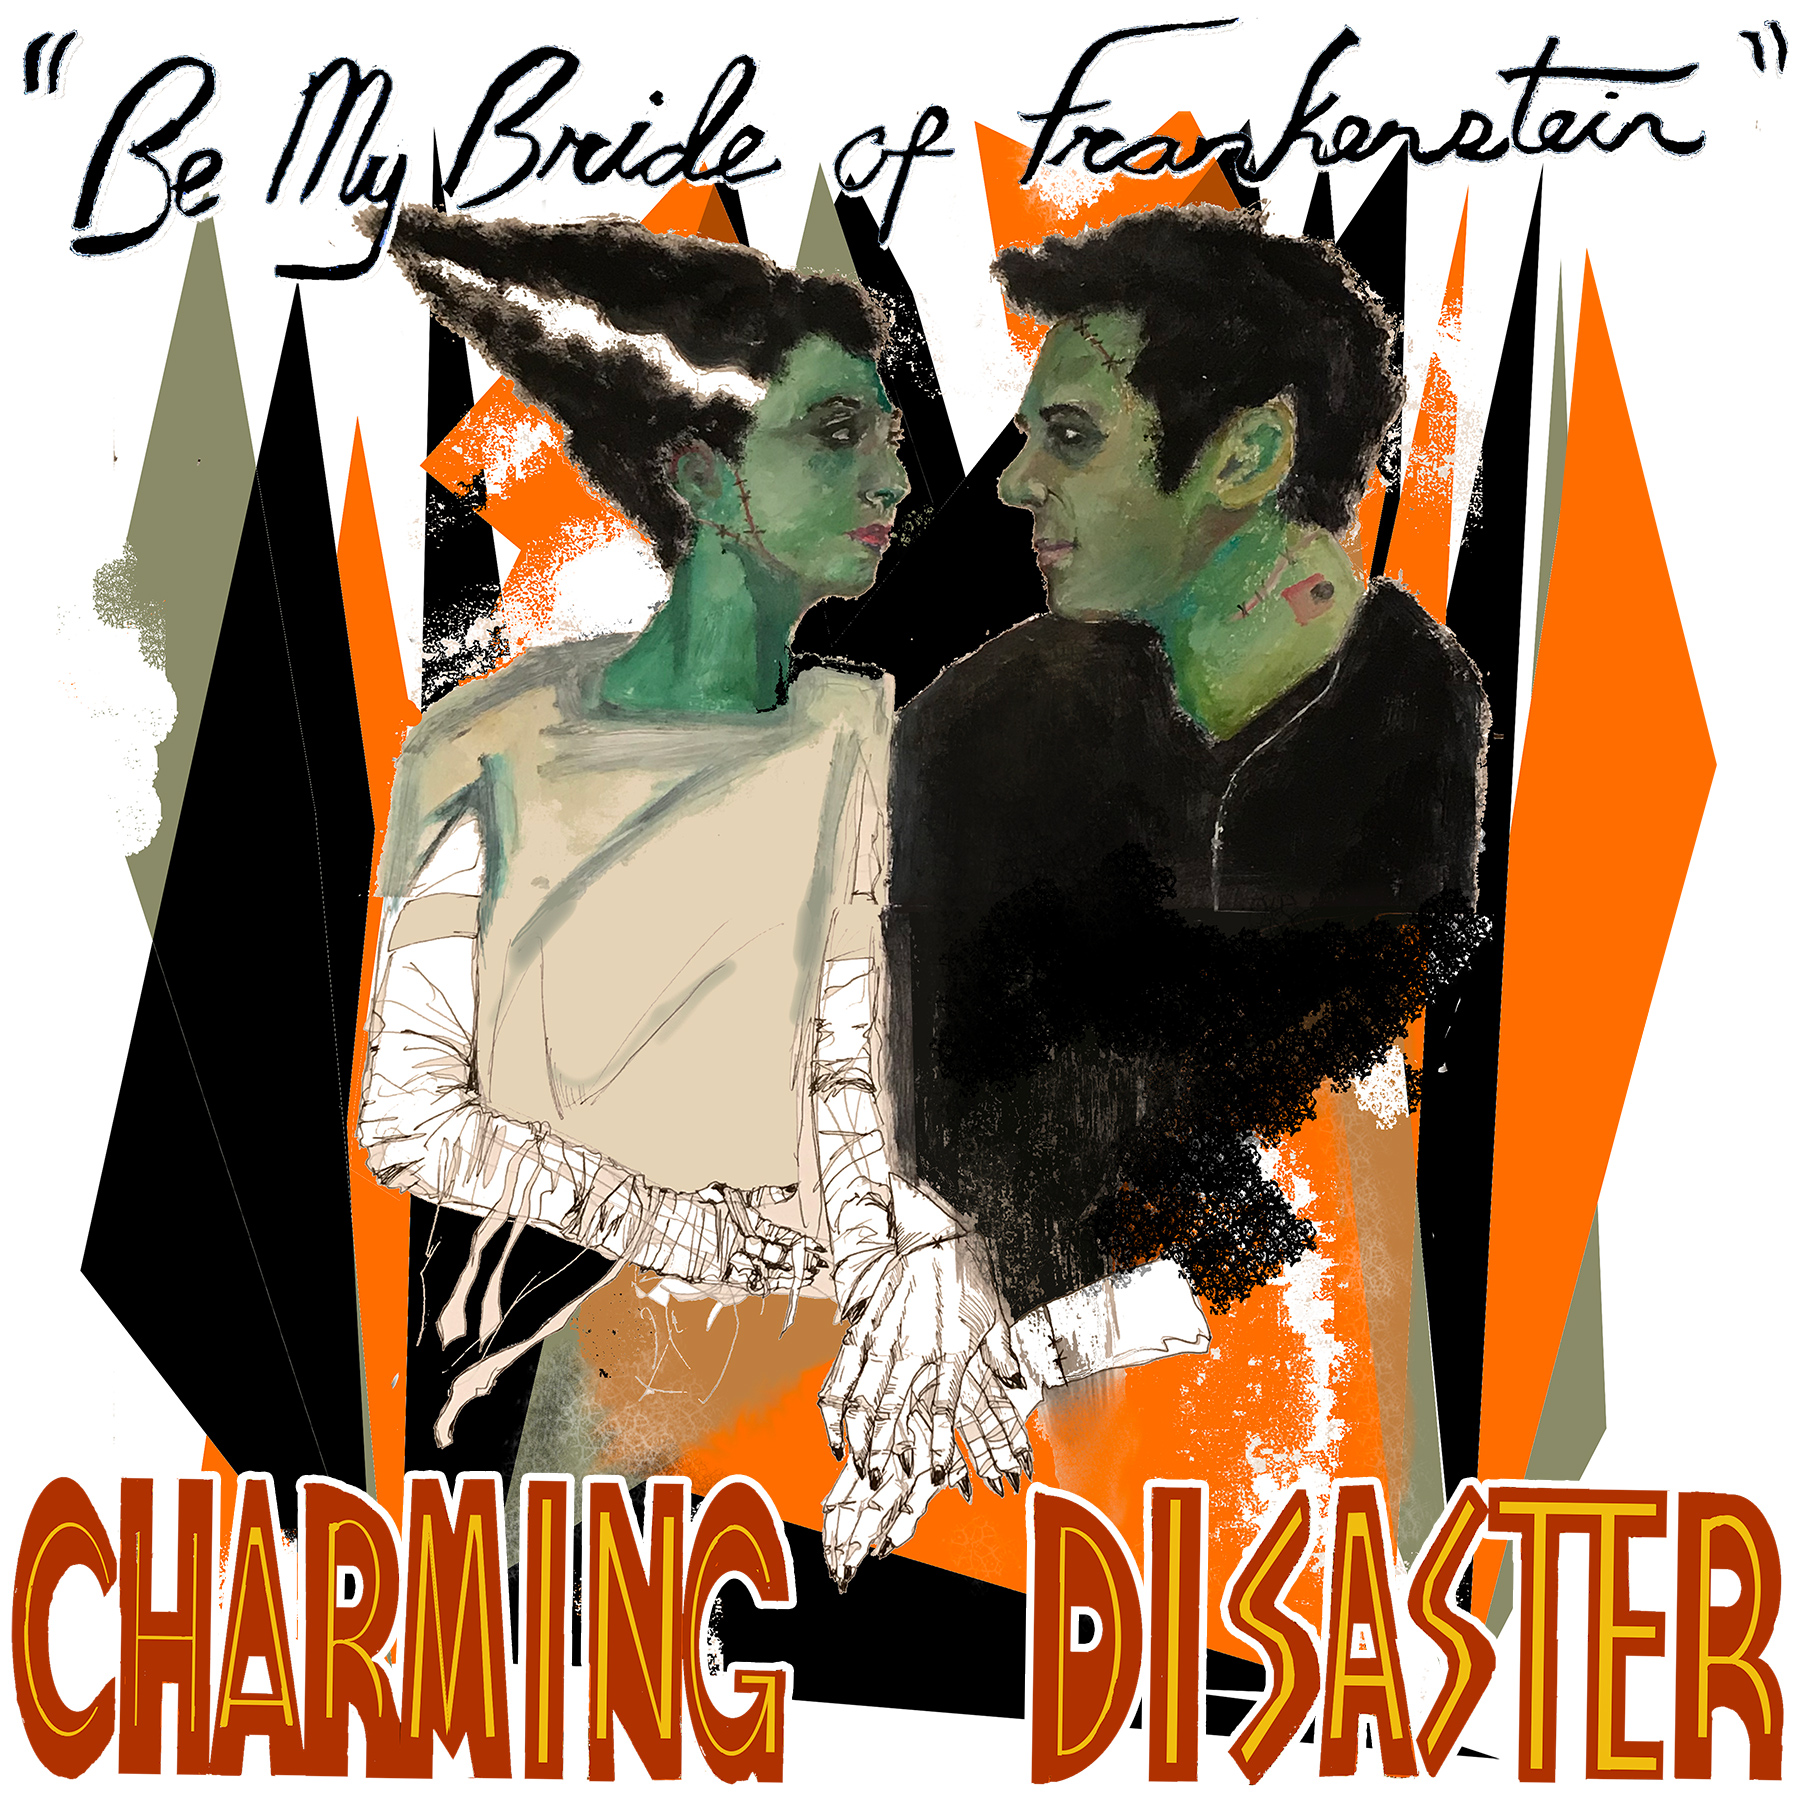 "It's Alive!!! - Charming Disaster's ""Be My Bride of Frankenstein"" is a monstrous love song inspired by retro novelty rock, channeling classic Halloween hits by way of Nick Cave & PJ Harvey -- or Boris Karloff & Elsa Lanchester.In their latest single, Charming Disaster follow in the tradition of goth-rockers like the Cramps, Bauhaus, and Siouxsie & the Banshees, nodding to spooky hits like Monster Mash and Werewolves of London, with a little Munsters and Addams Family thrown in. It's the perfect number to include on any Halloween (or wedding) playlist.""Be My Bride of Frankenstein"" is out now and will be included on Charming Disaster's forthcoming third album, SPELLS + RITUALS.Artwork by Logan Riley"